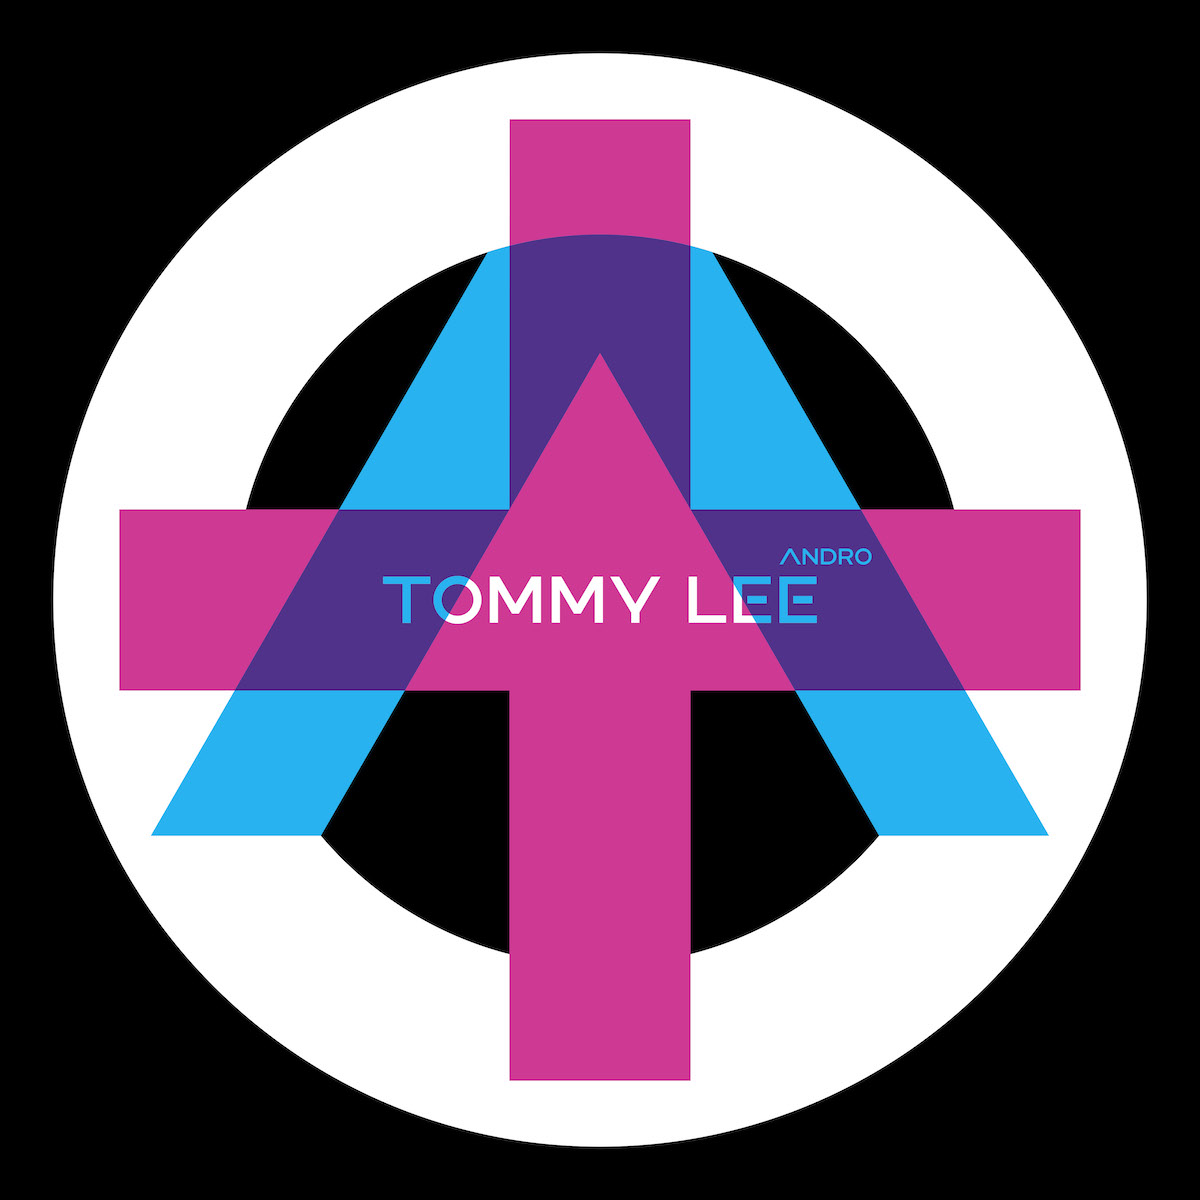 Tommy Lee ANDRO Album Artwork